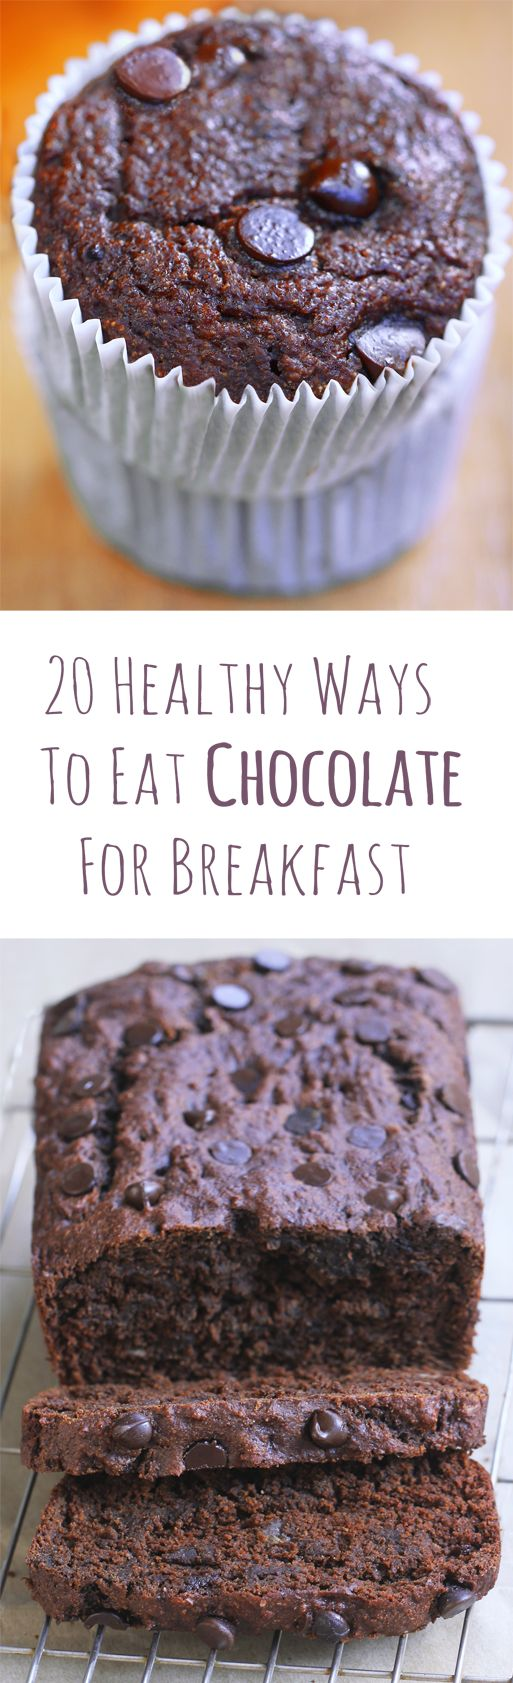 20 delicious & surprisingly wholesome chocolate breakfast recipes – because sometimes, you just wake up craving chocolate!     If you're a chocoholic like me, you'll probably understand what I'm about